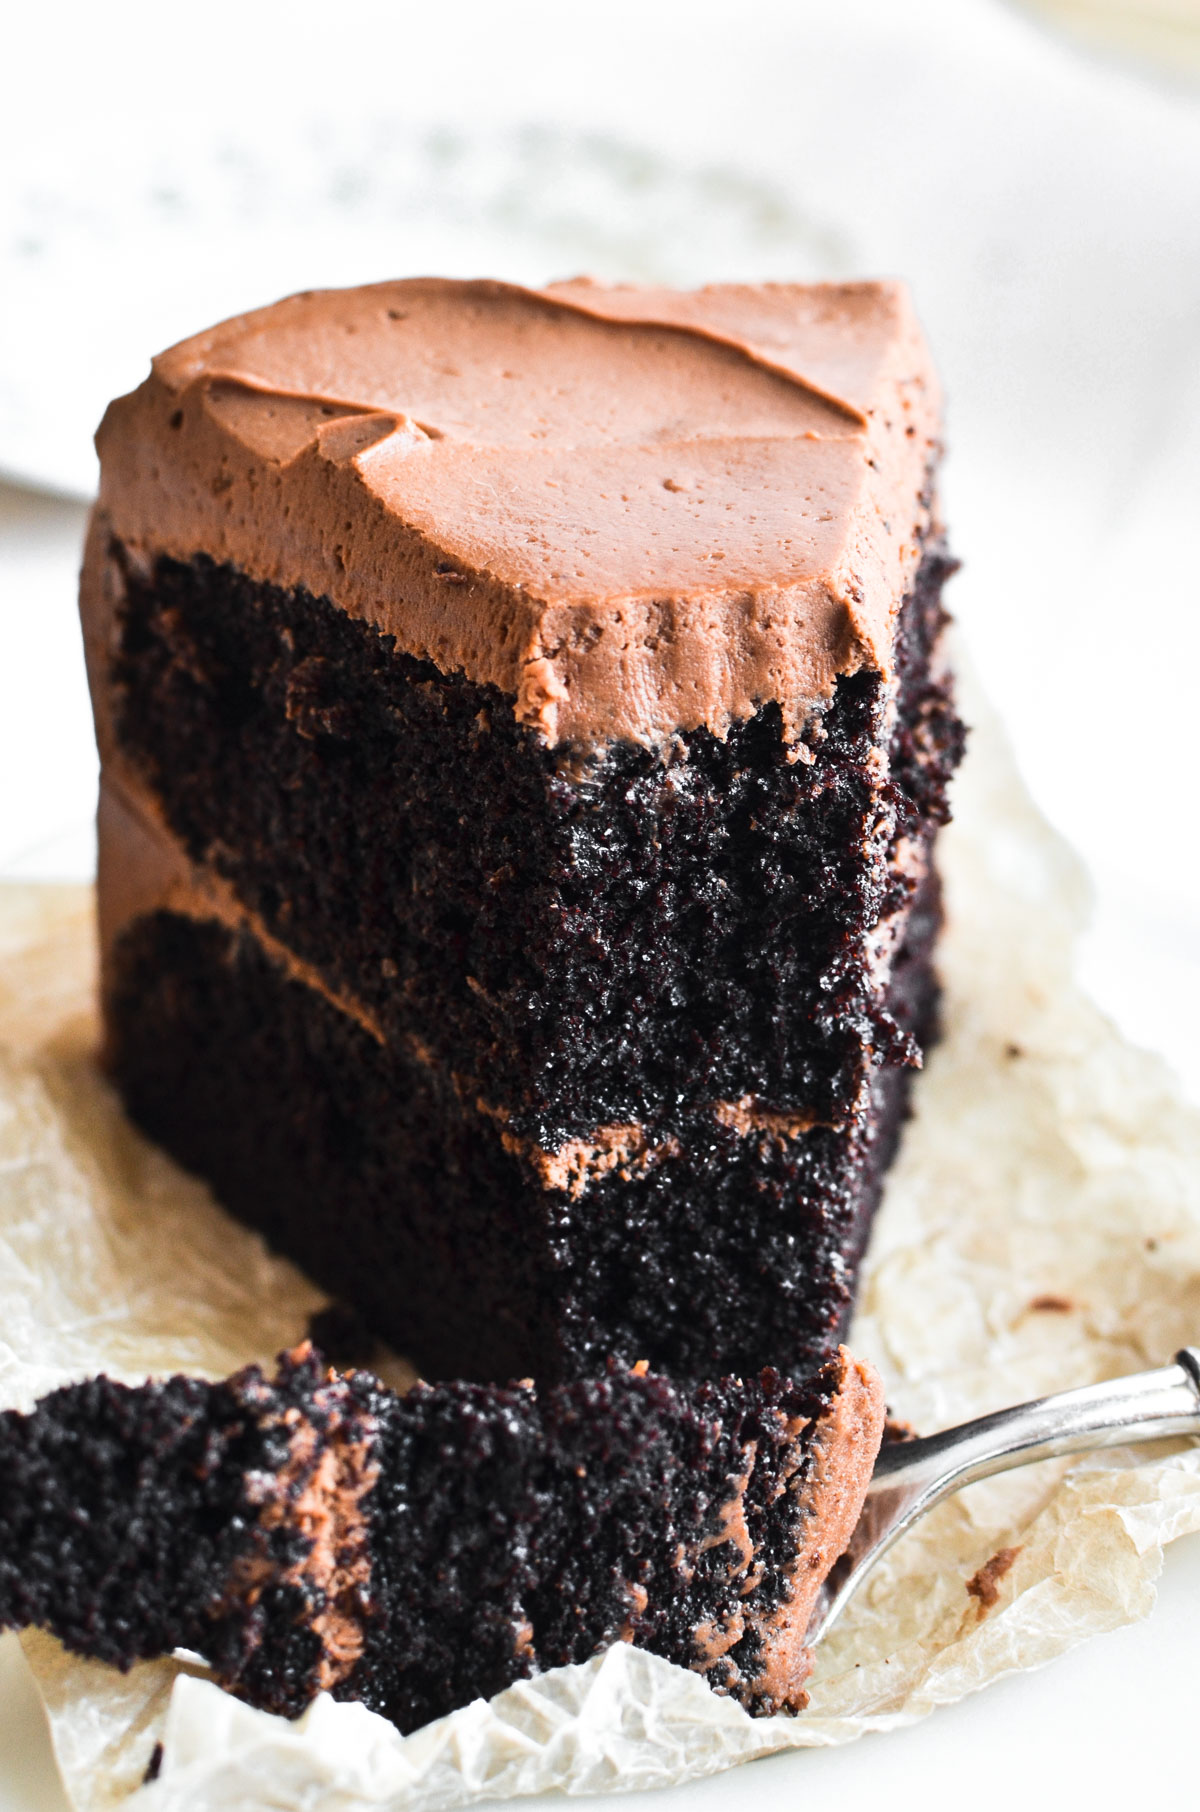 a slice of Ina Garten's chocolate cake